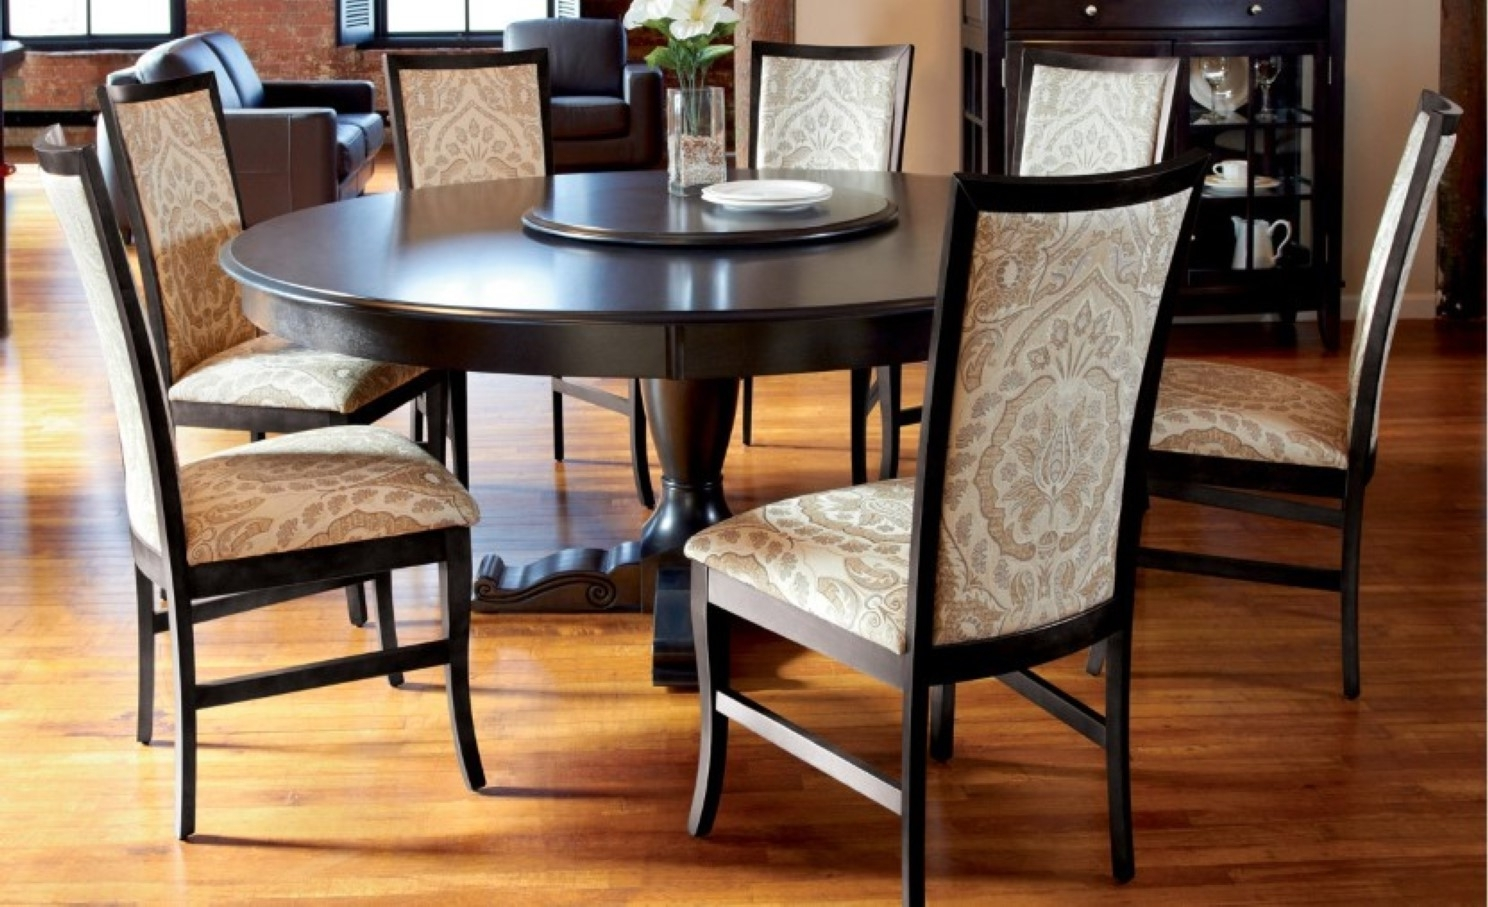 Most Recent Dining Tables And Six Chairs Intended For Round Dining Table Set With Leaf (View 18 of 25)